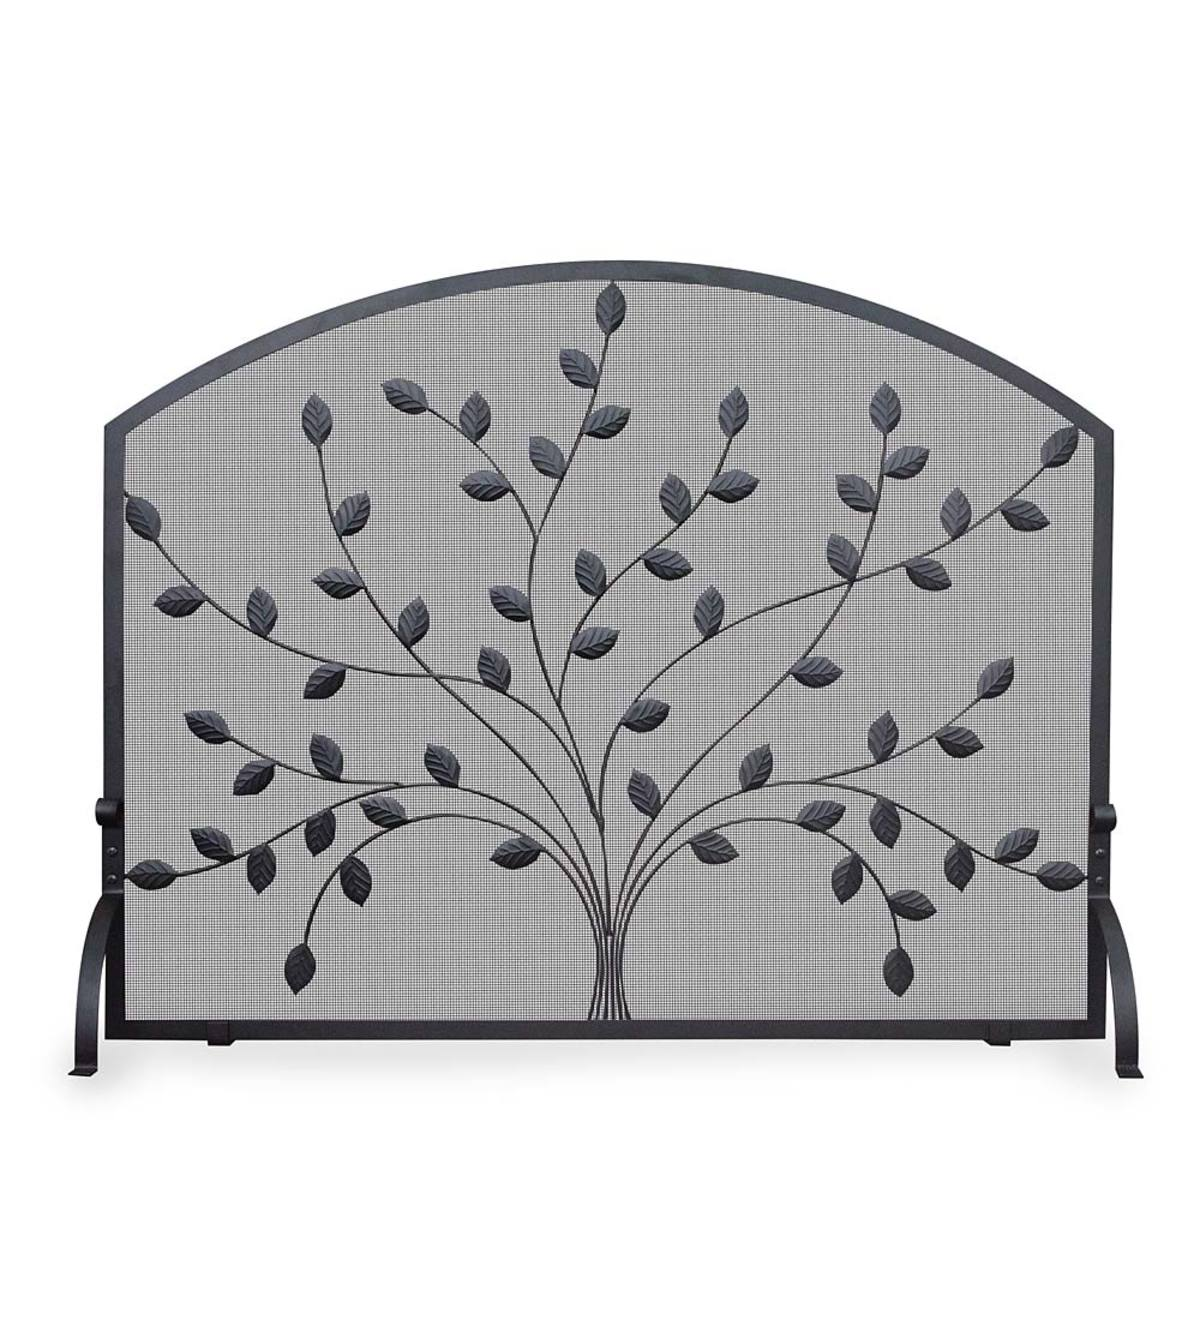 Fantastic Single Panel Black Wrought Iron Tree Fireplace Screen Interior Design Ideas Clesiryabchikinfo